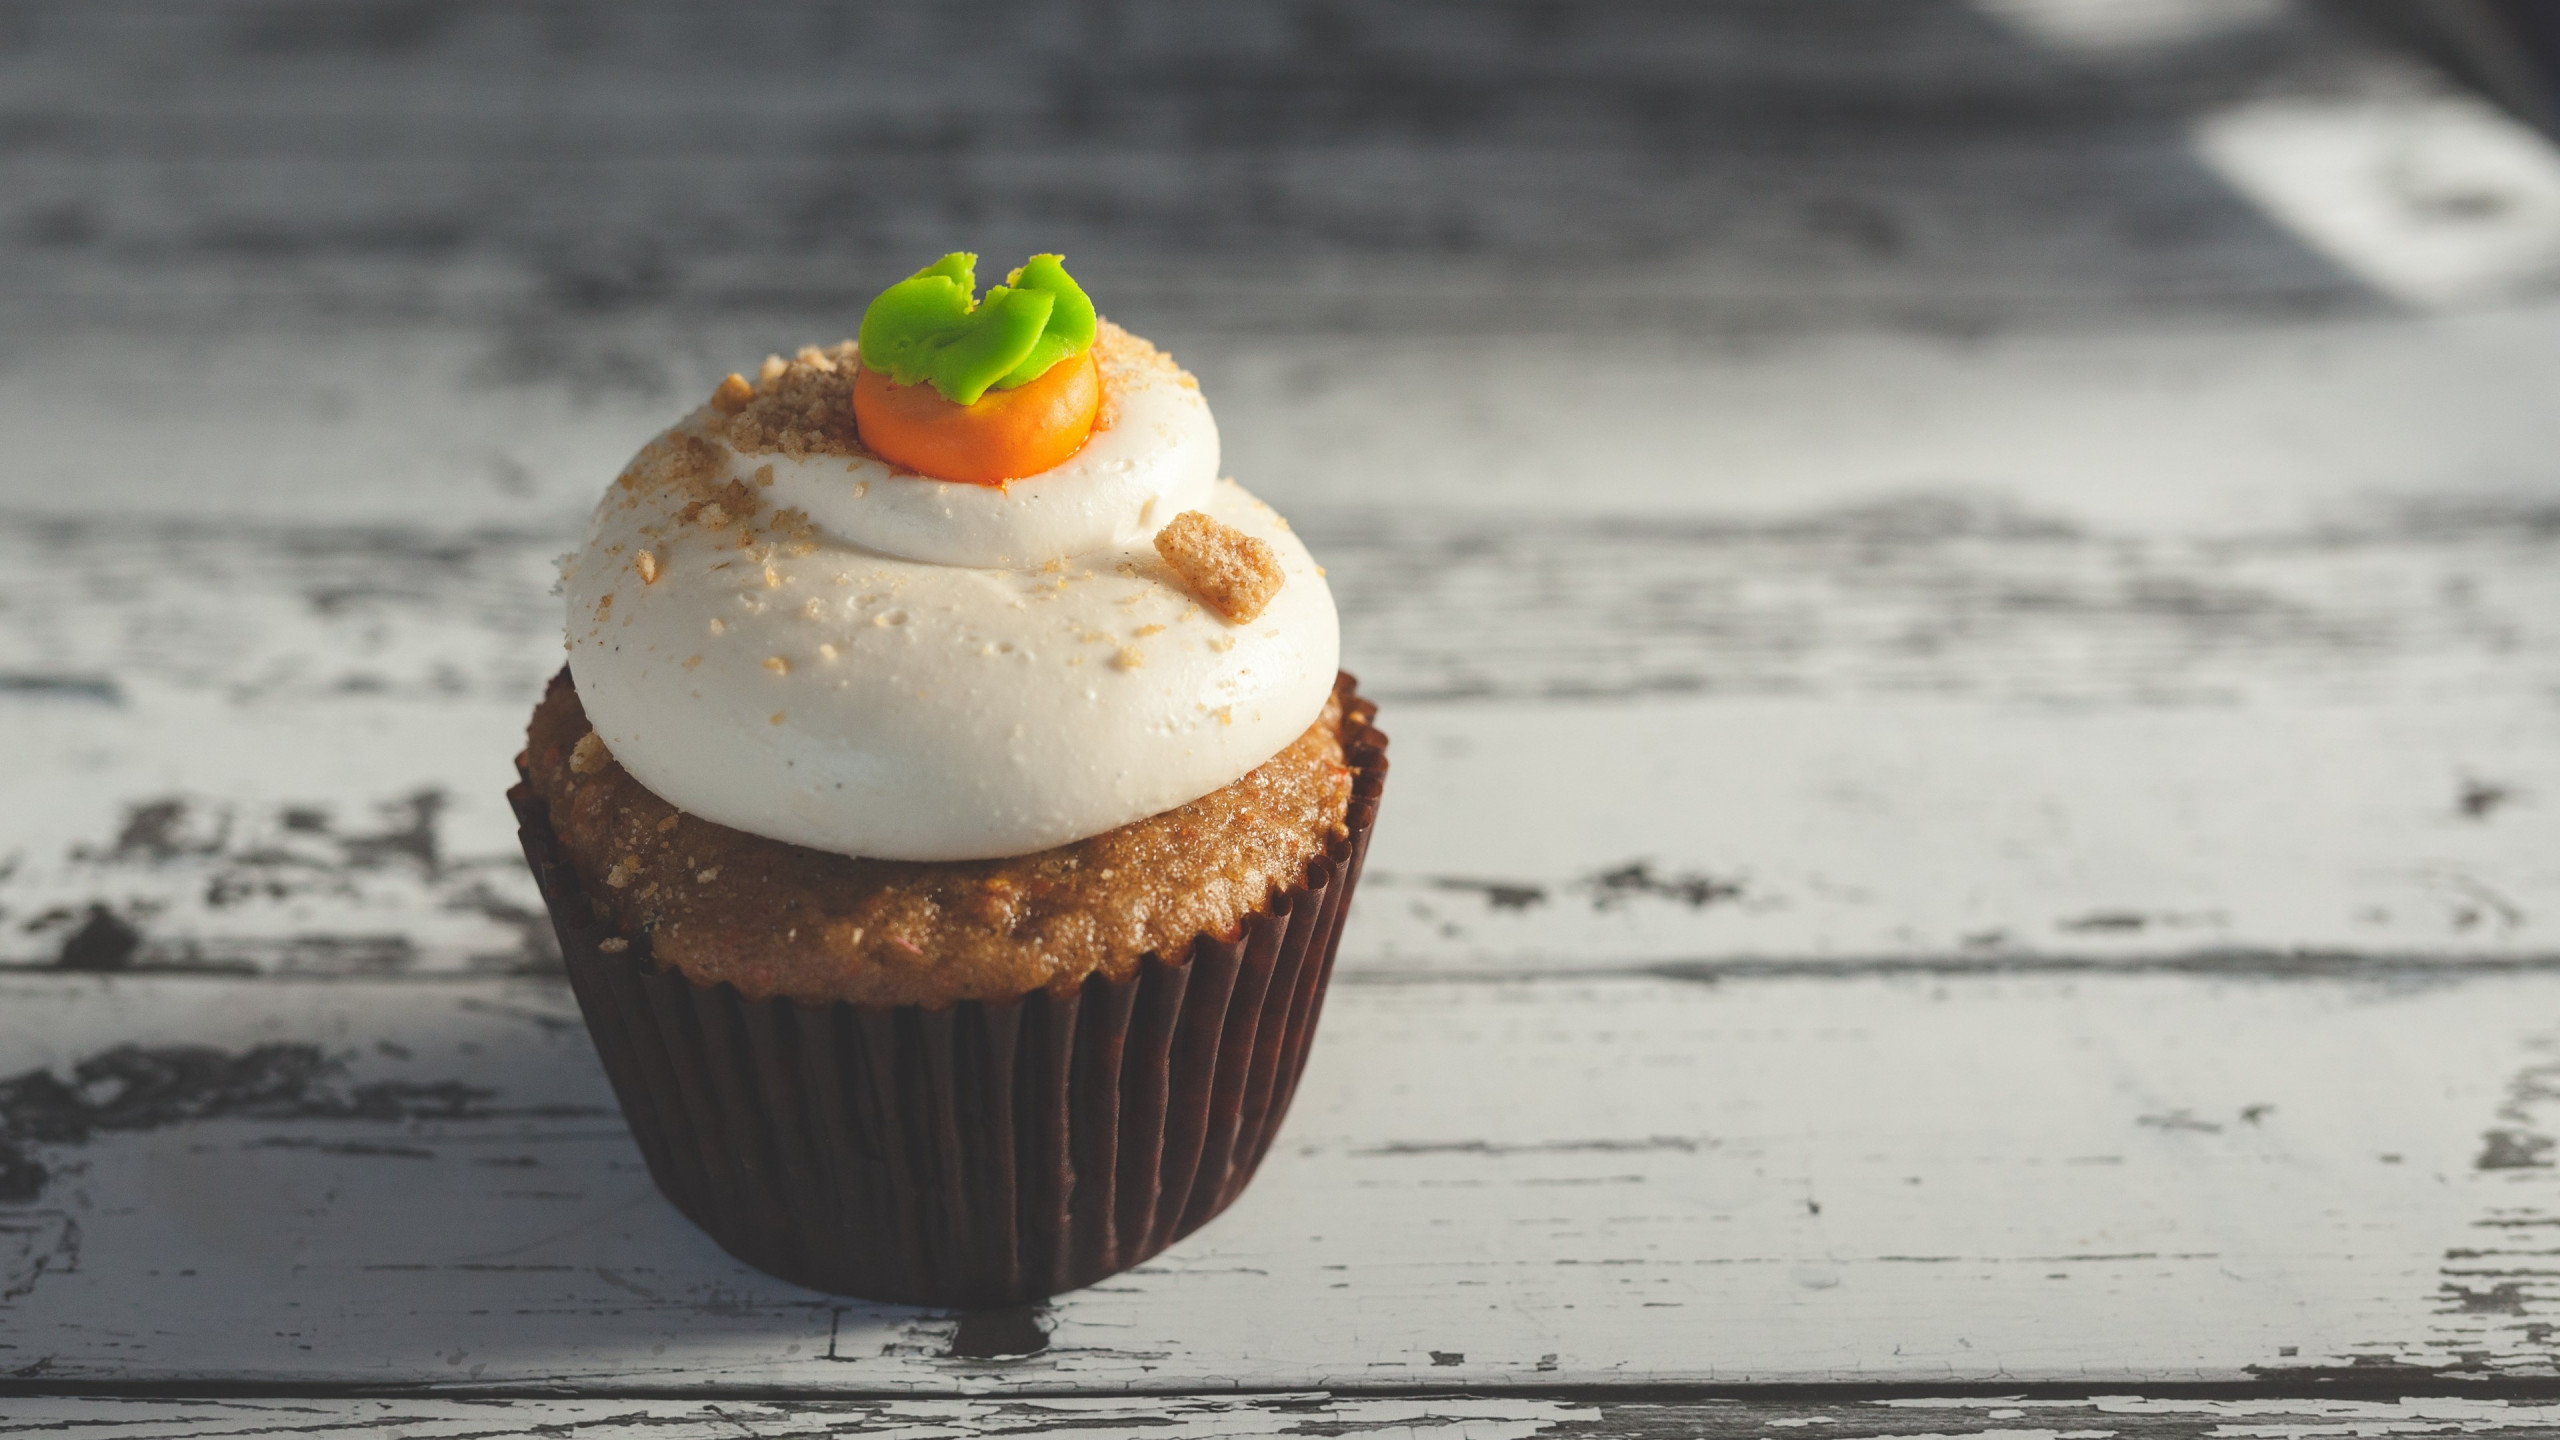 Muffin with cream | 2560x1440 wallpaper